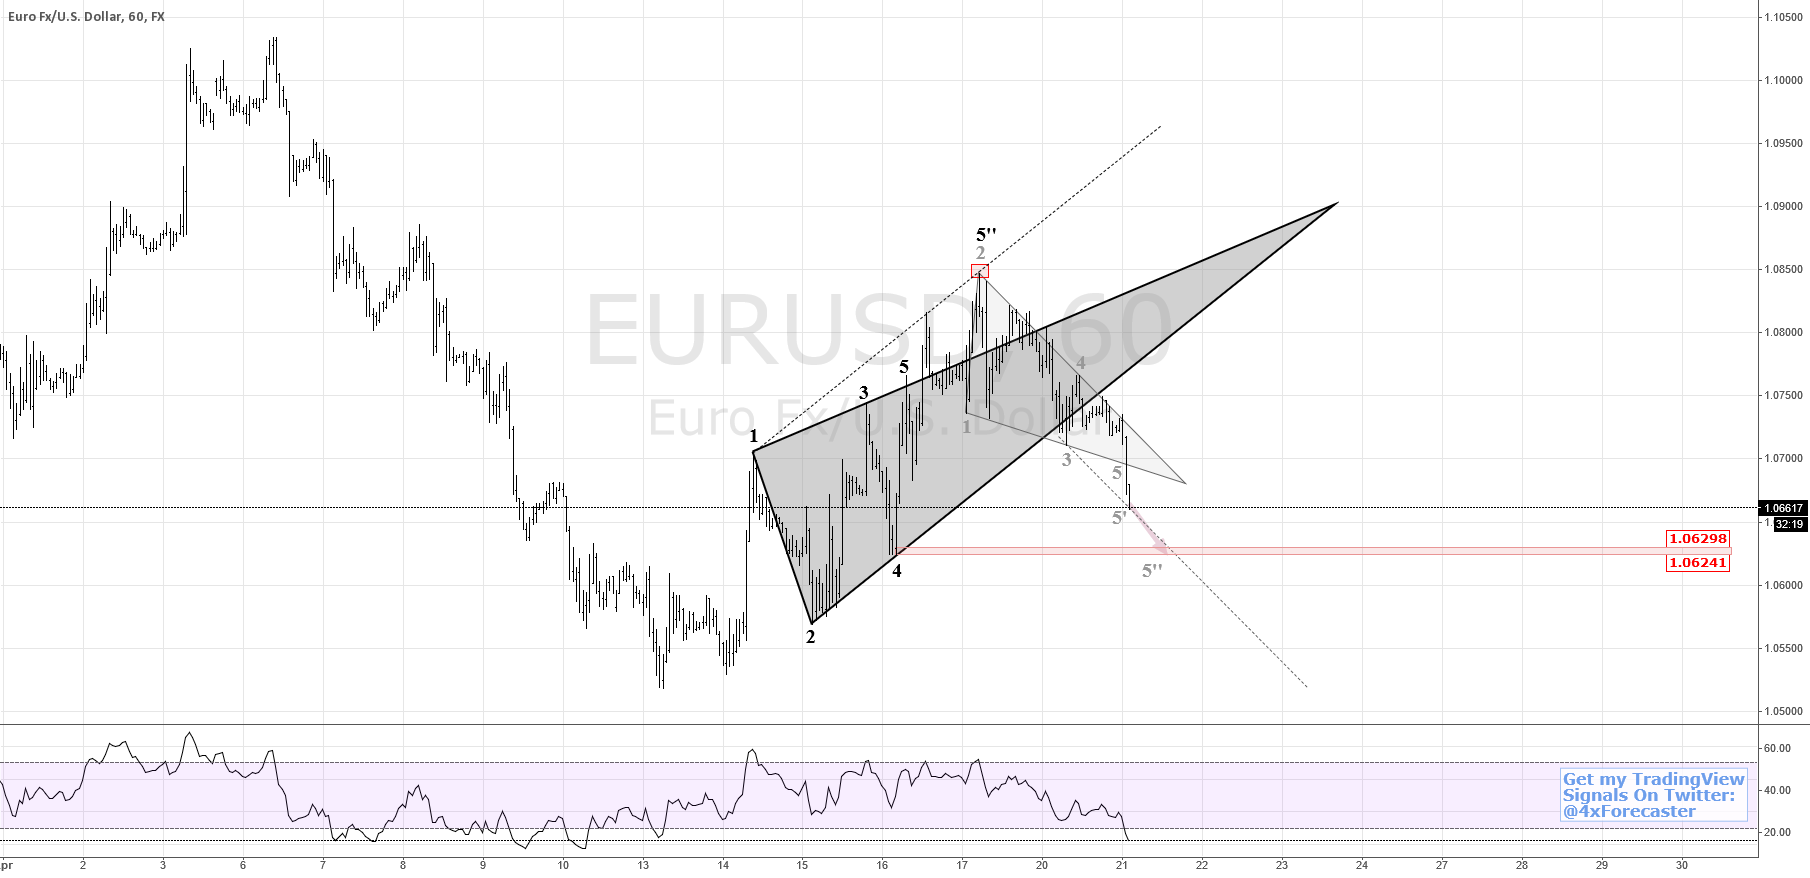 Significant support at 1.06298/6241 Level | $EUR $USD #forex